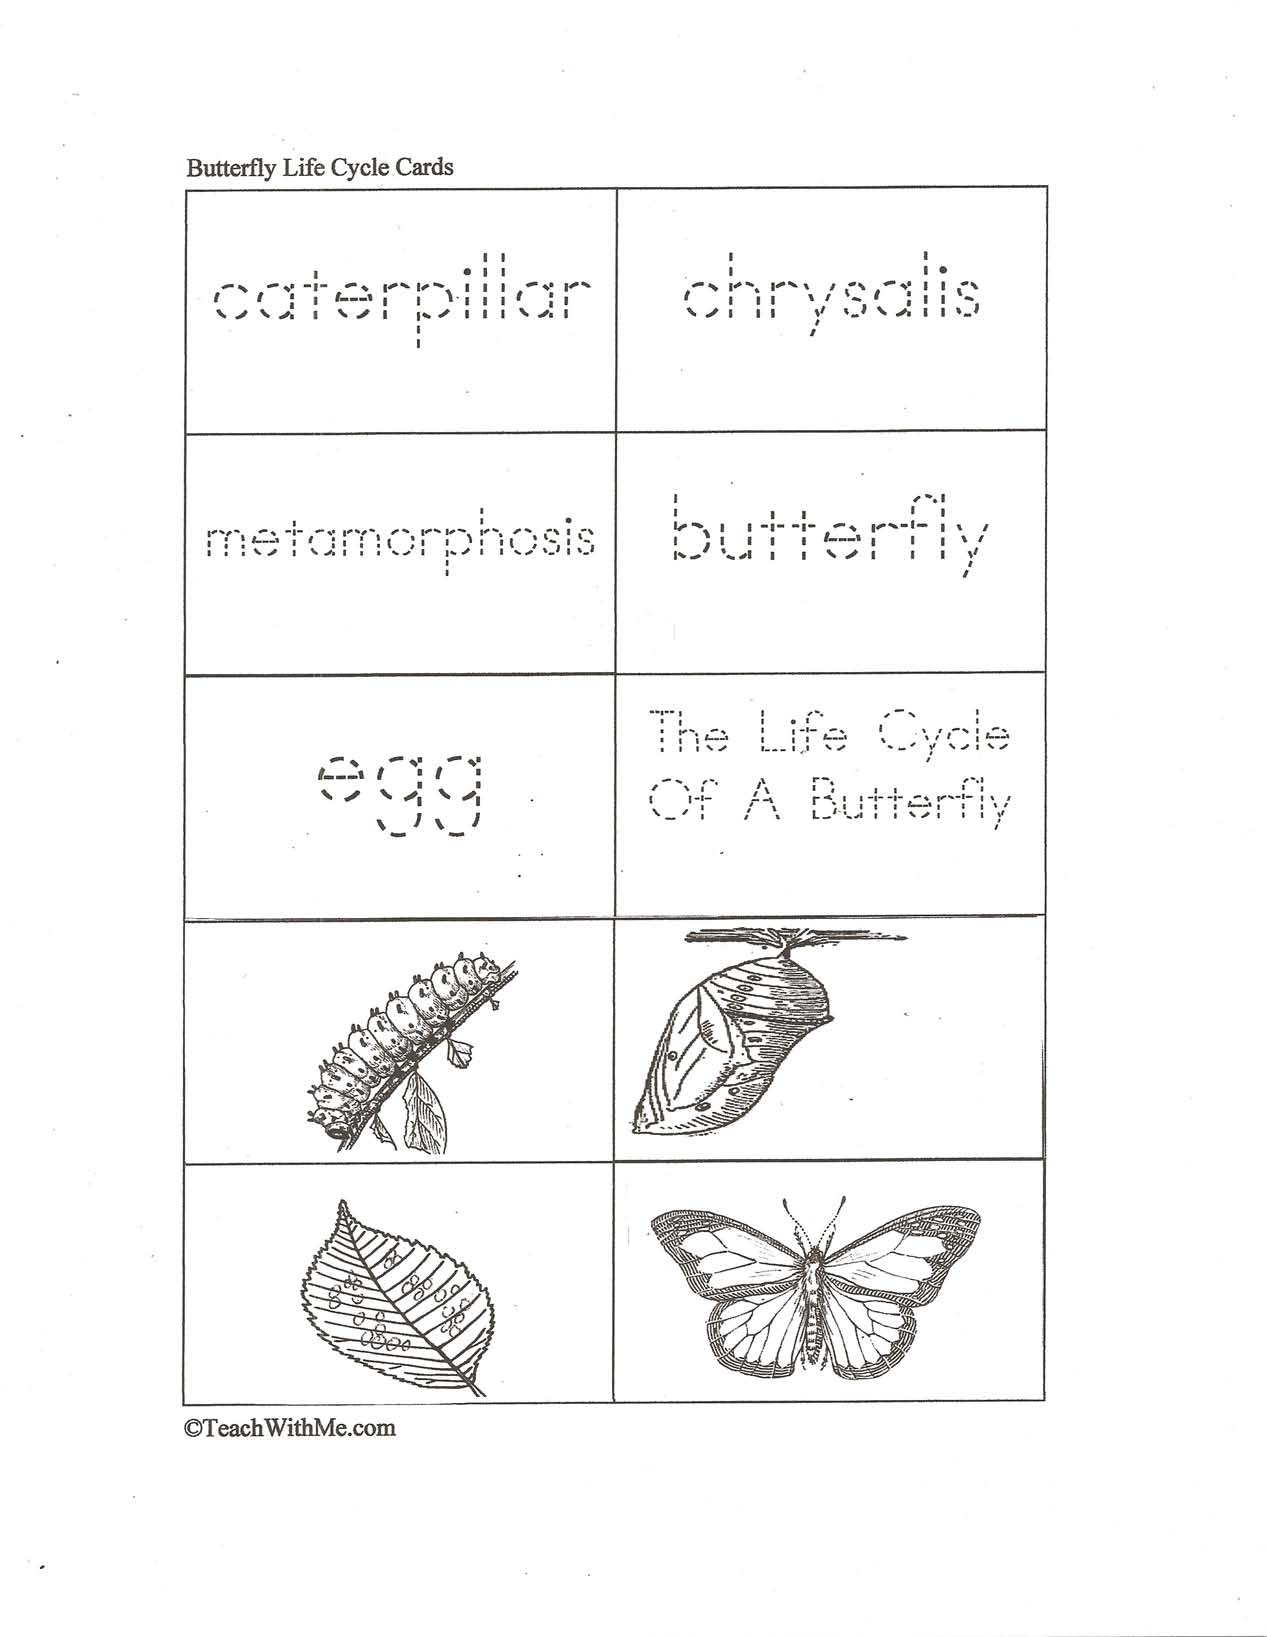 color booklet, color word flashcards, contraction activities, contraction worksheets,butterfly booklet, butterfly life cycle activities, butterfly life cycle booklet, butterfly life cycle posters, butterfly life cycle anchor chart, butterfly life cycle picture to label, butterfly activities, caterpillar activities, science activities, butterfly games, butterfly flashcards, butterfly lifecycle flashcards,